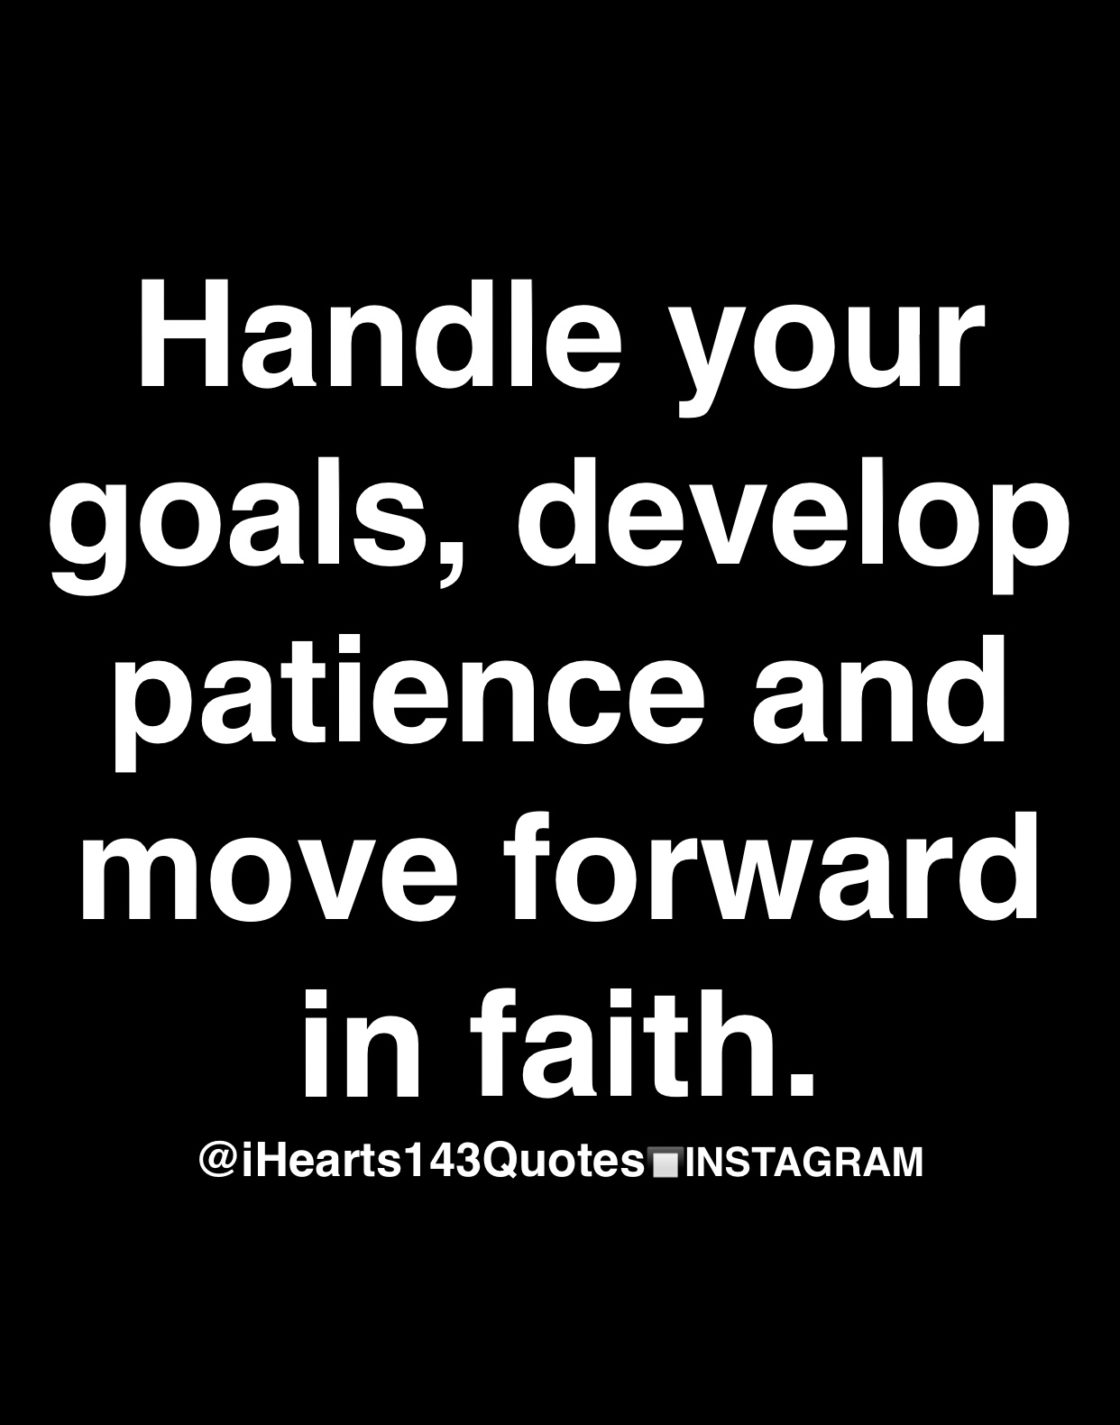 Motivational Quotes Motivational Quotes  Ihearts143Quotes